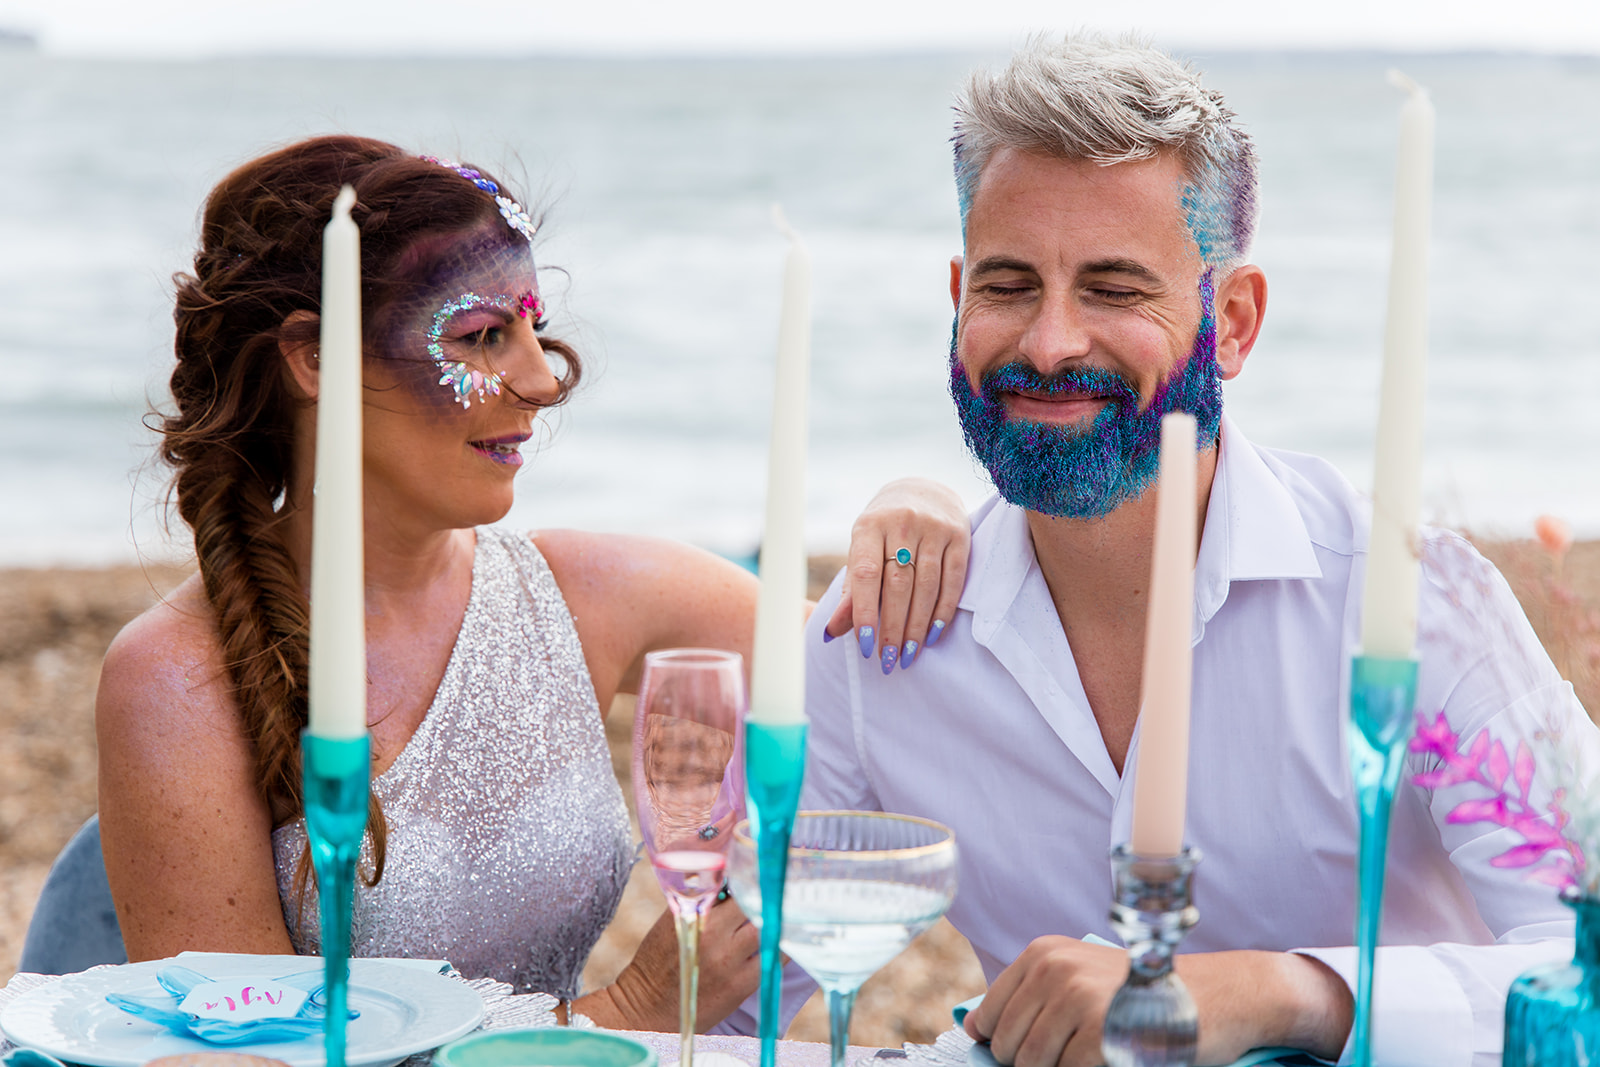 mermaid wedding - beach wedding - quirky wedding - unique wedding - alternative seaside wedding - alternative wedding - groom with beard glitter